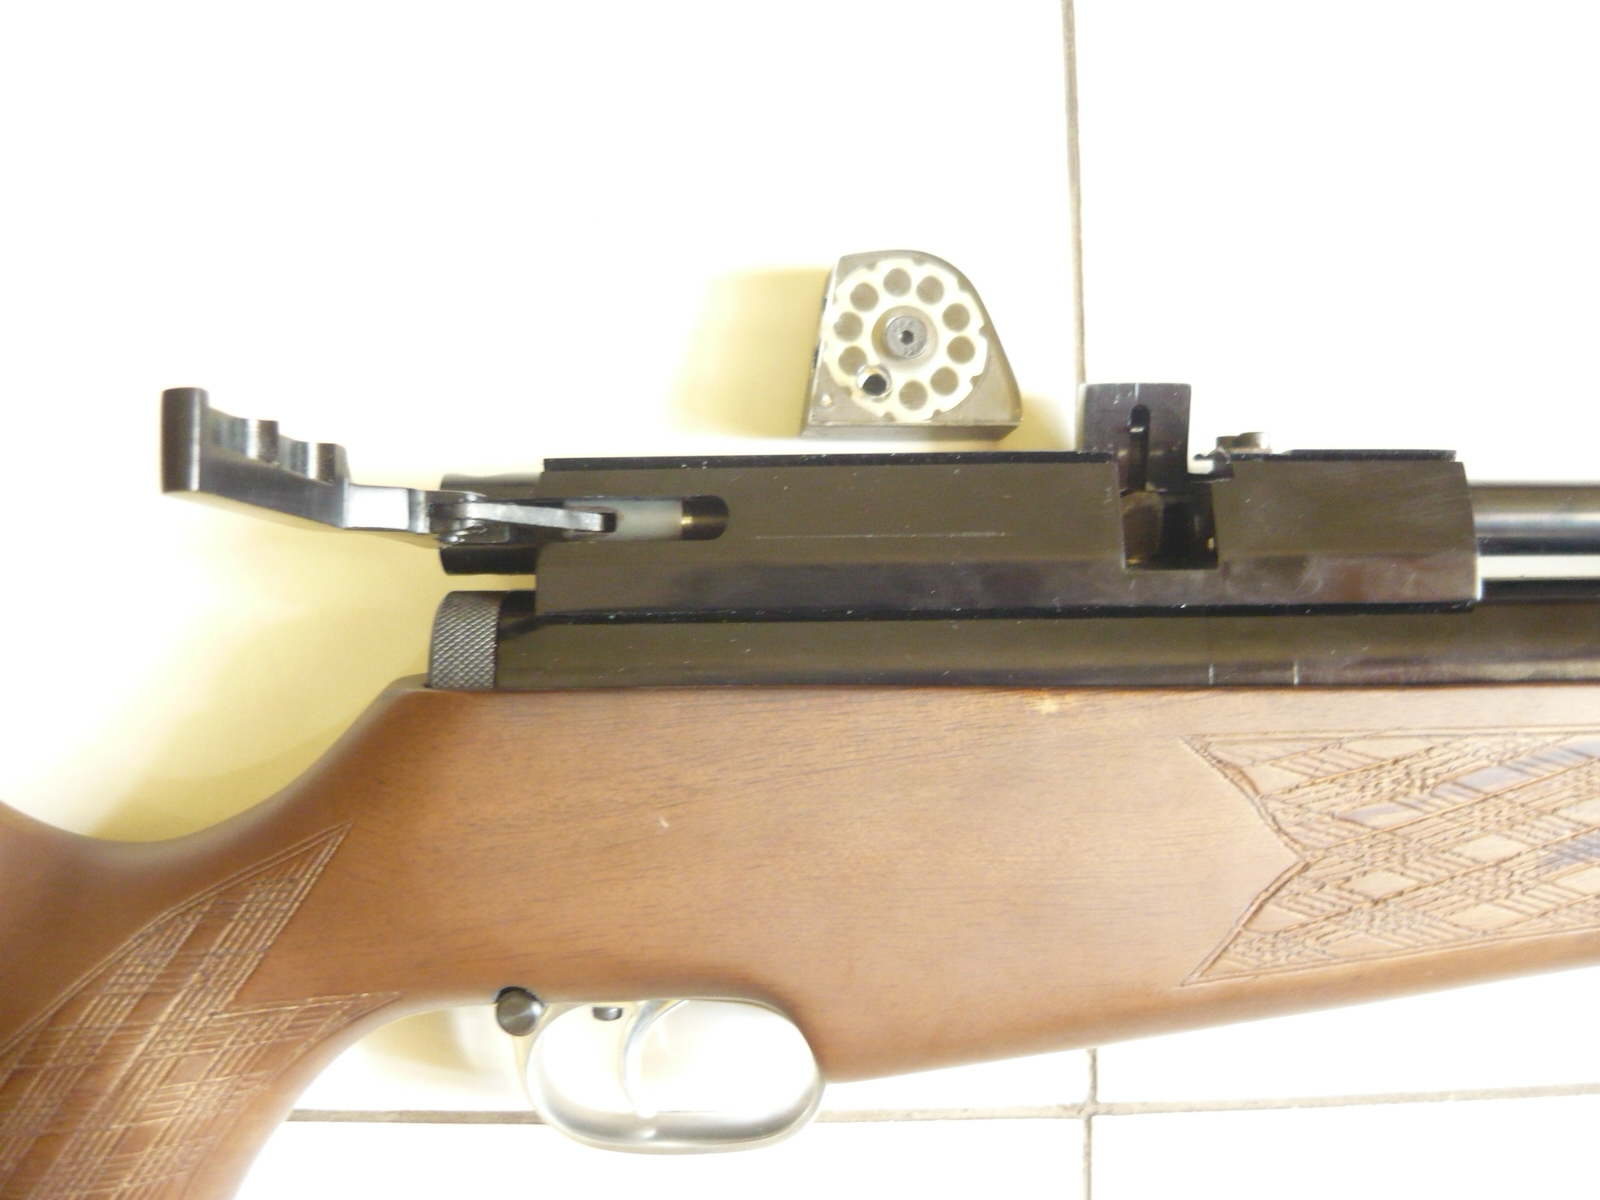 Laras Senapan Angin Barrel Air Rifle Pcp Revorver